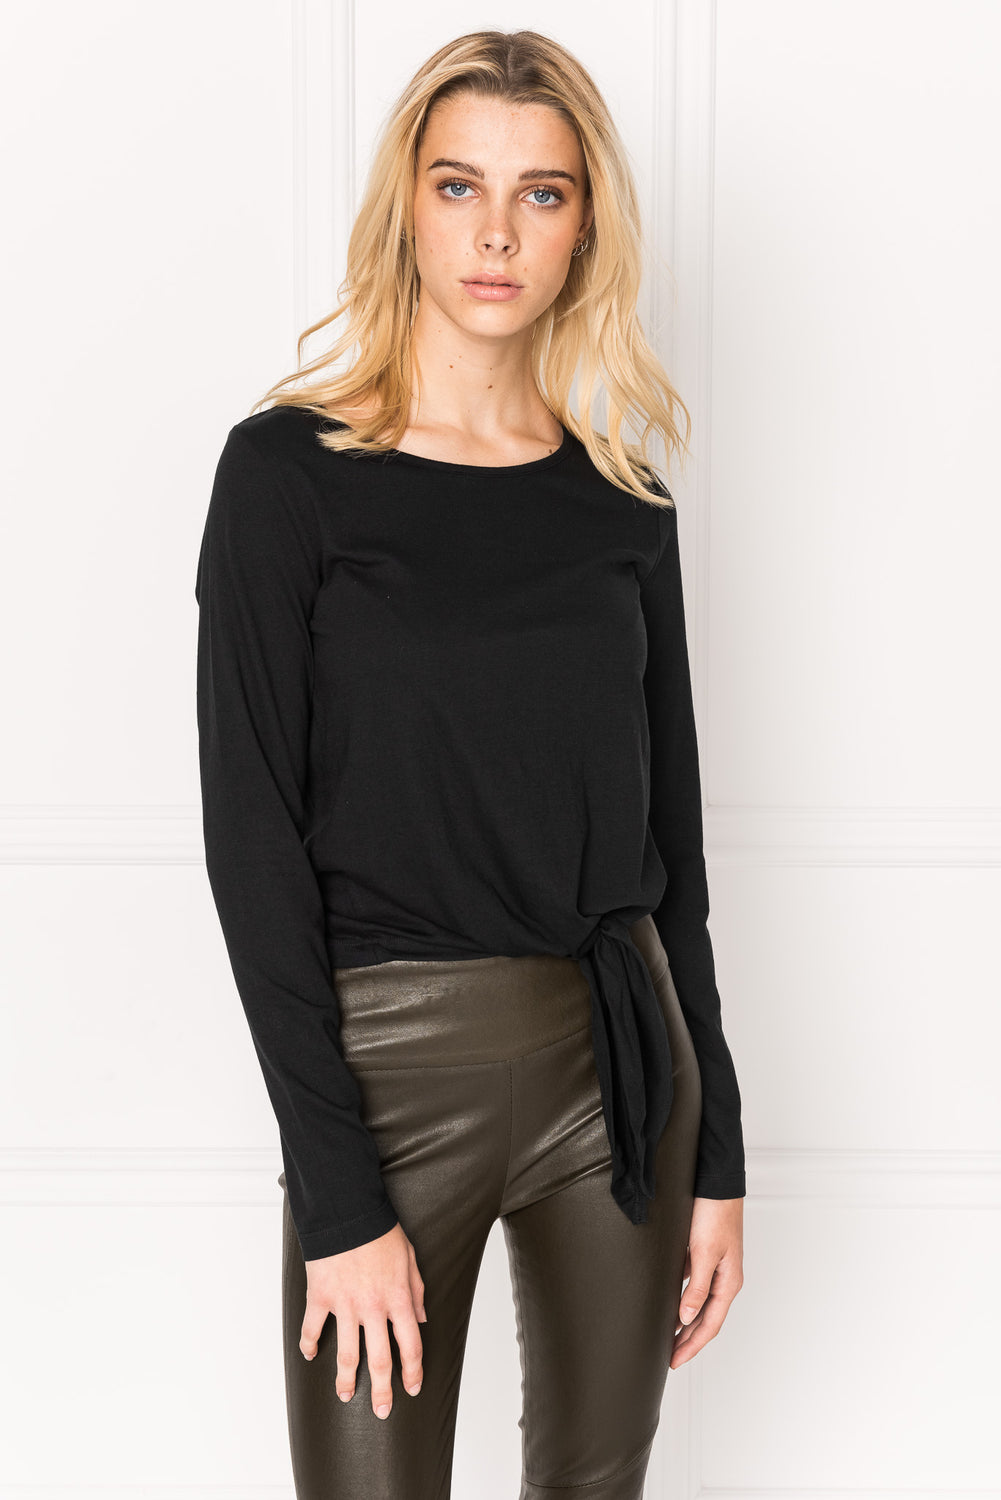 SORA Black Tie Front Long Sleeve Tee